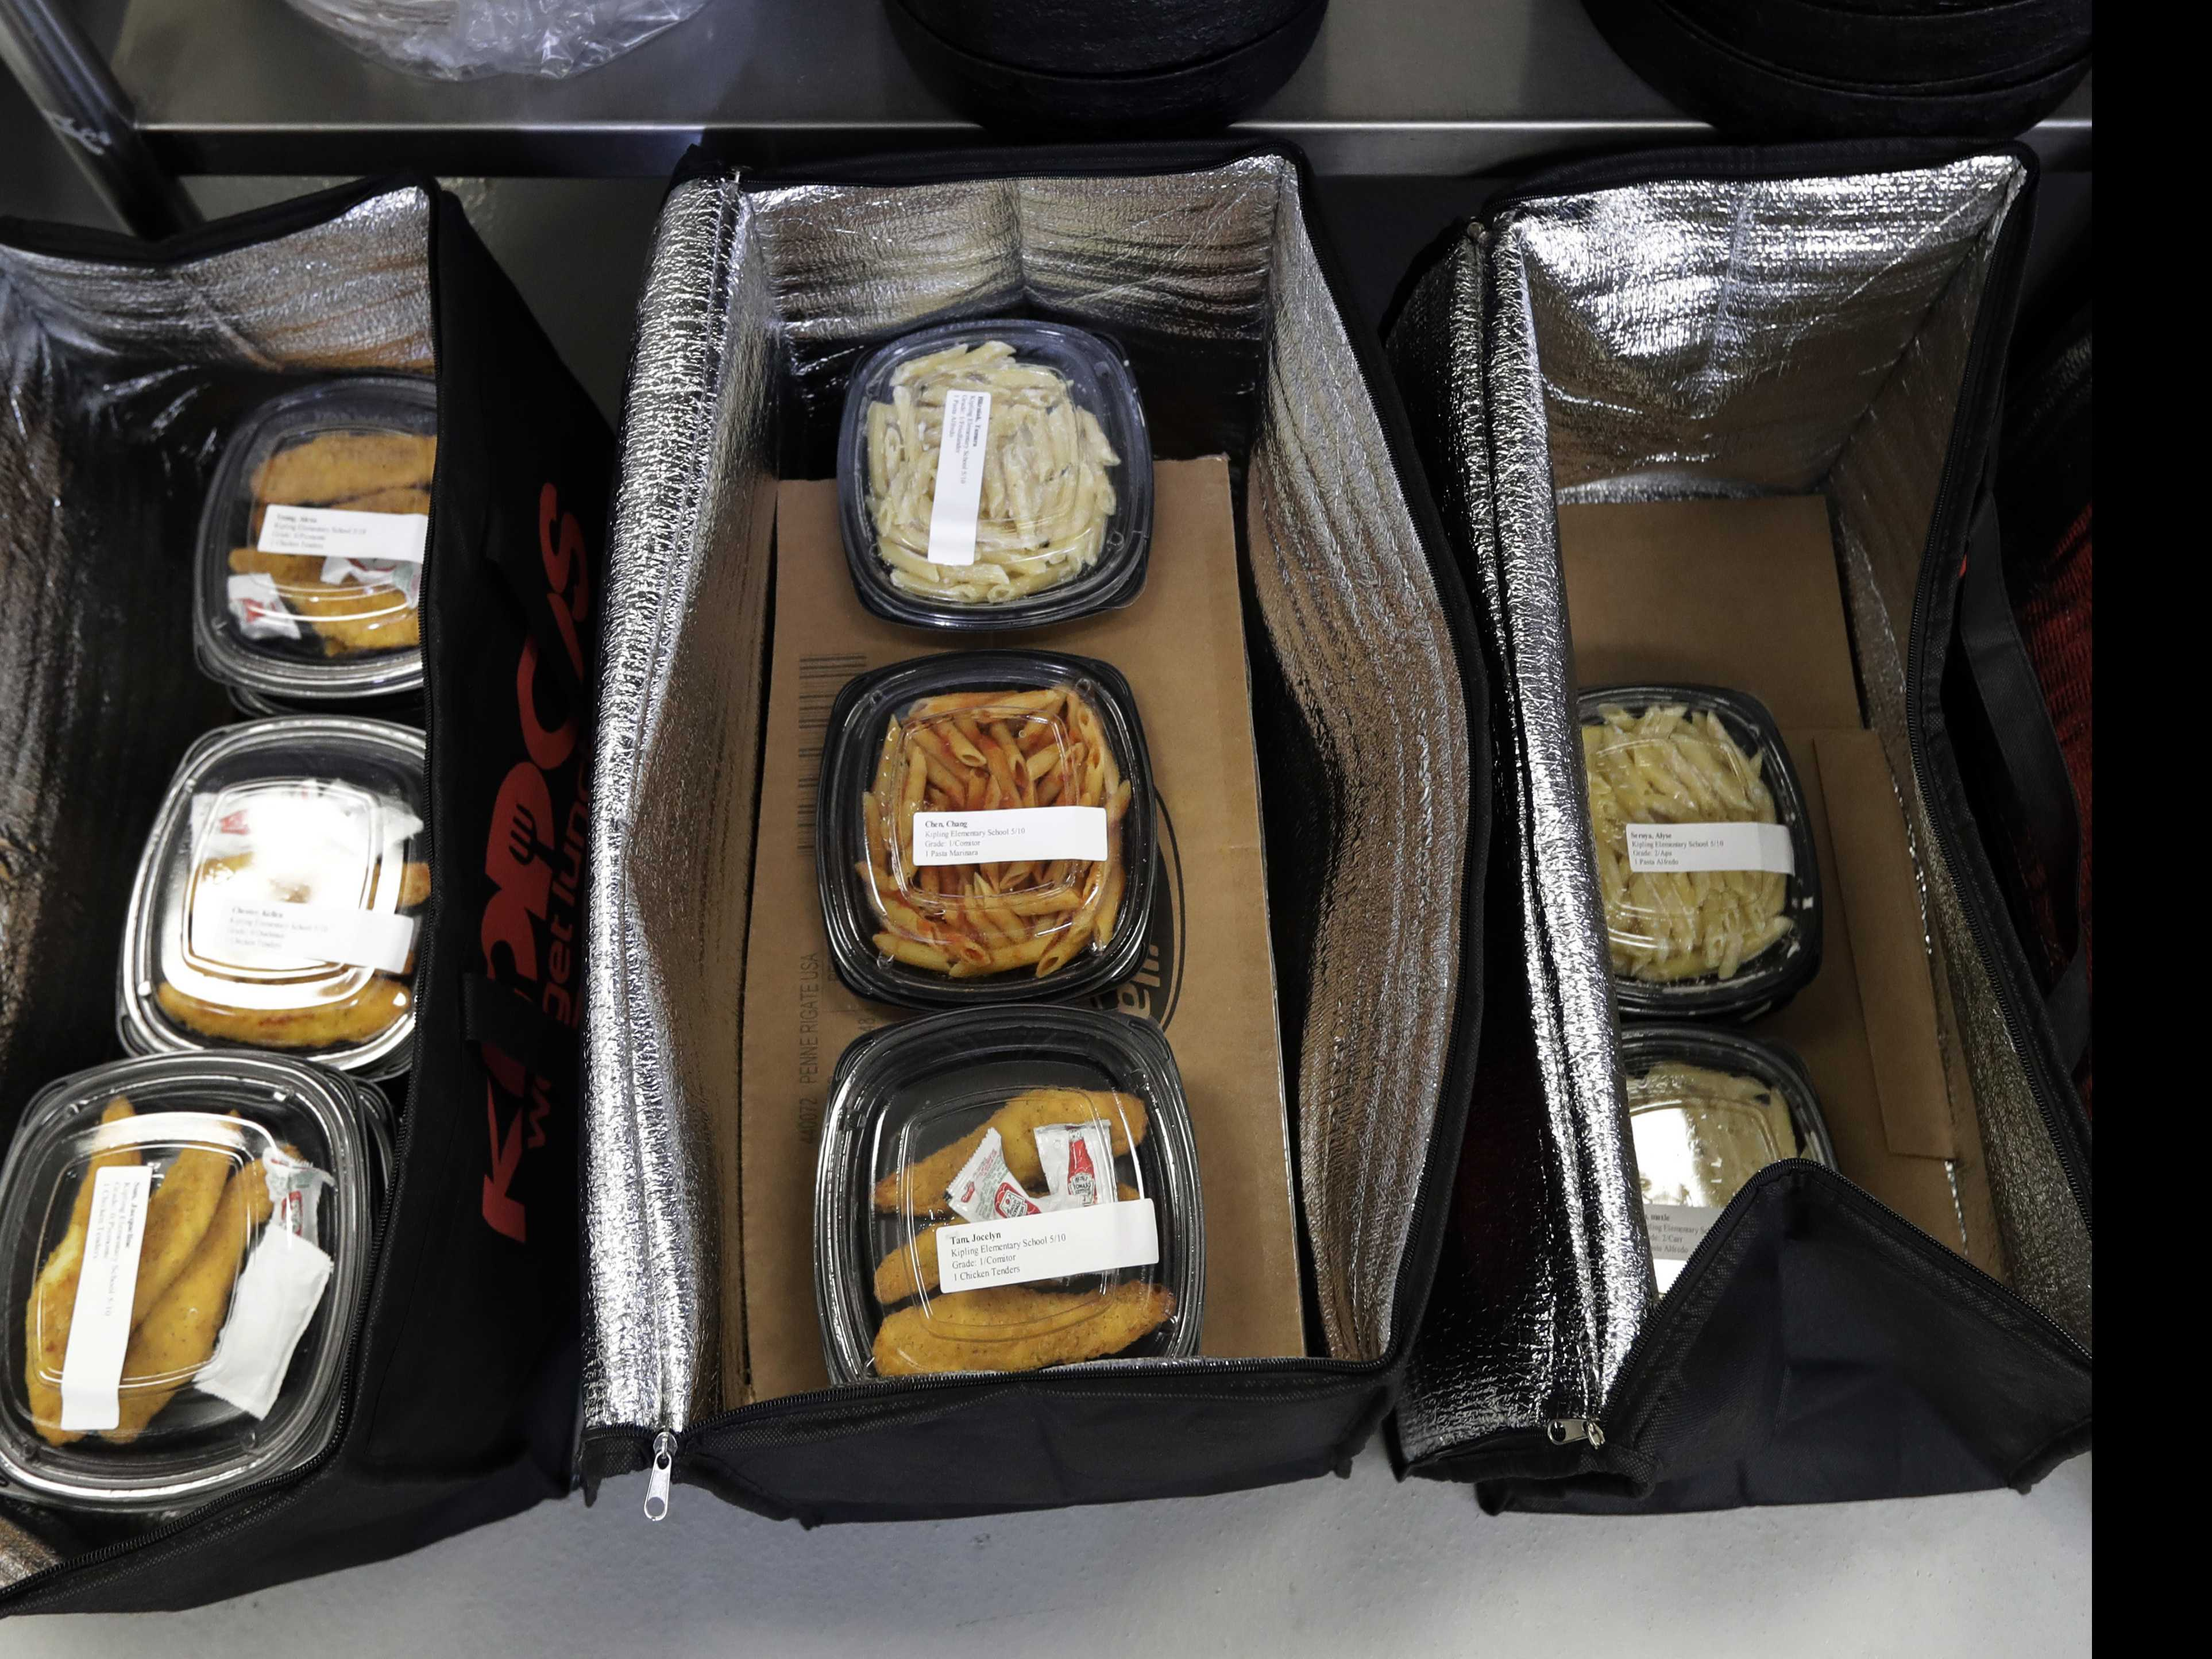 Food Deliveries Are Remaking School Lunch